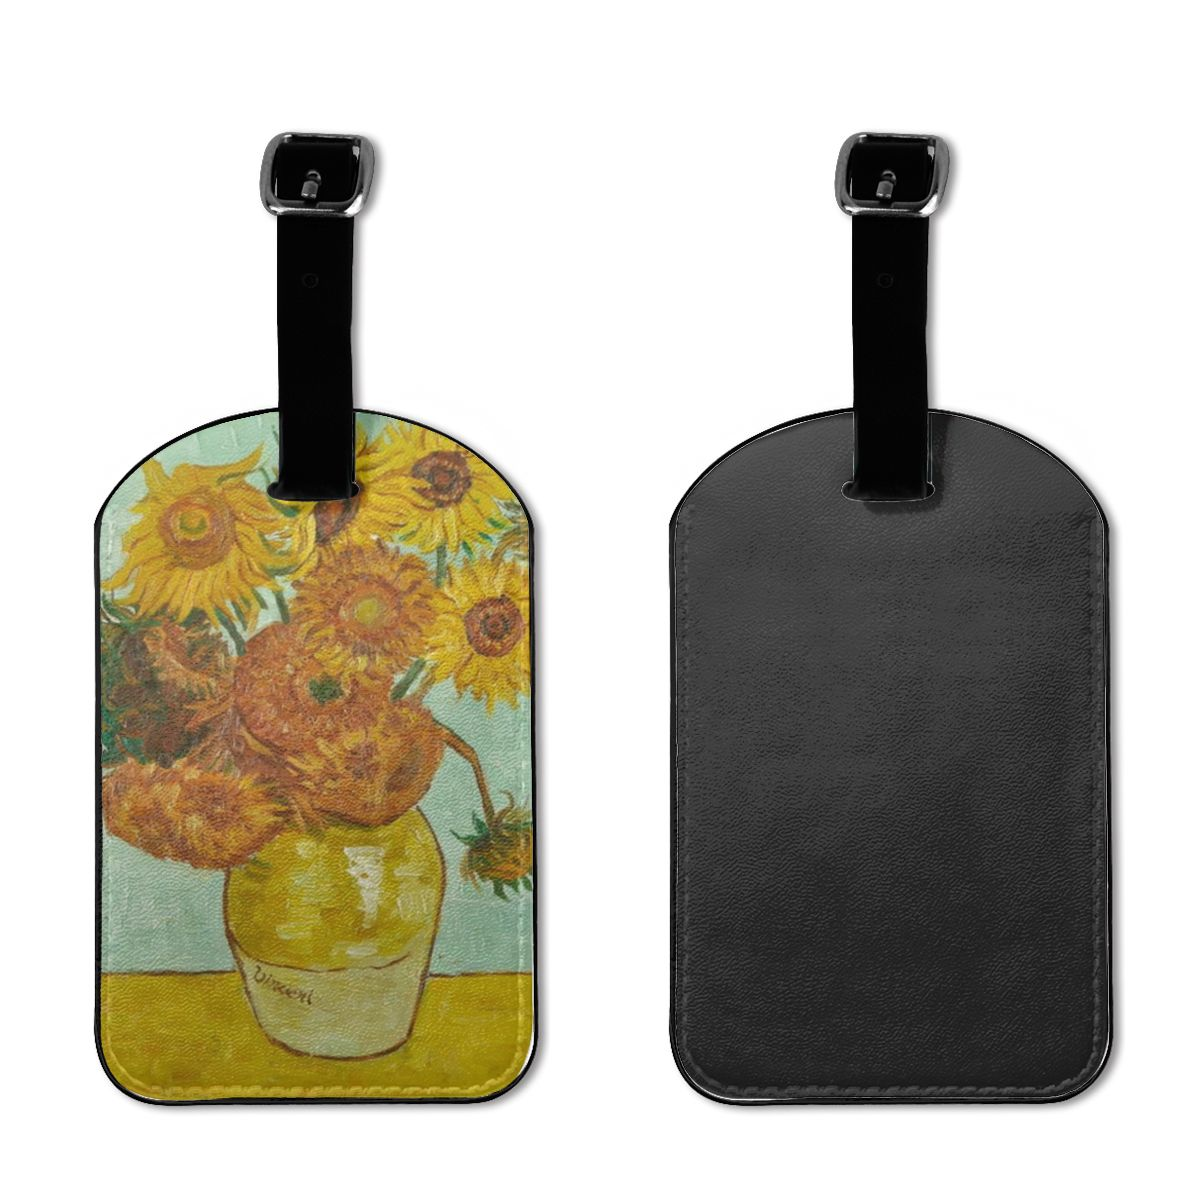 NOISYDESIGNS Customizde Vincent Van Gogh Luggage Tags Set Of 2 Travel Accessories Luggage Tags Travel Hanging Tags